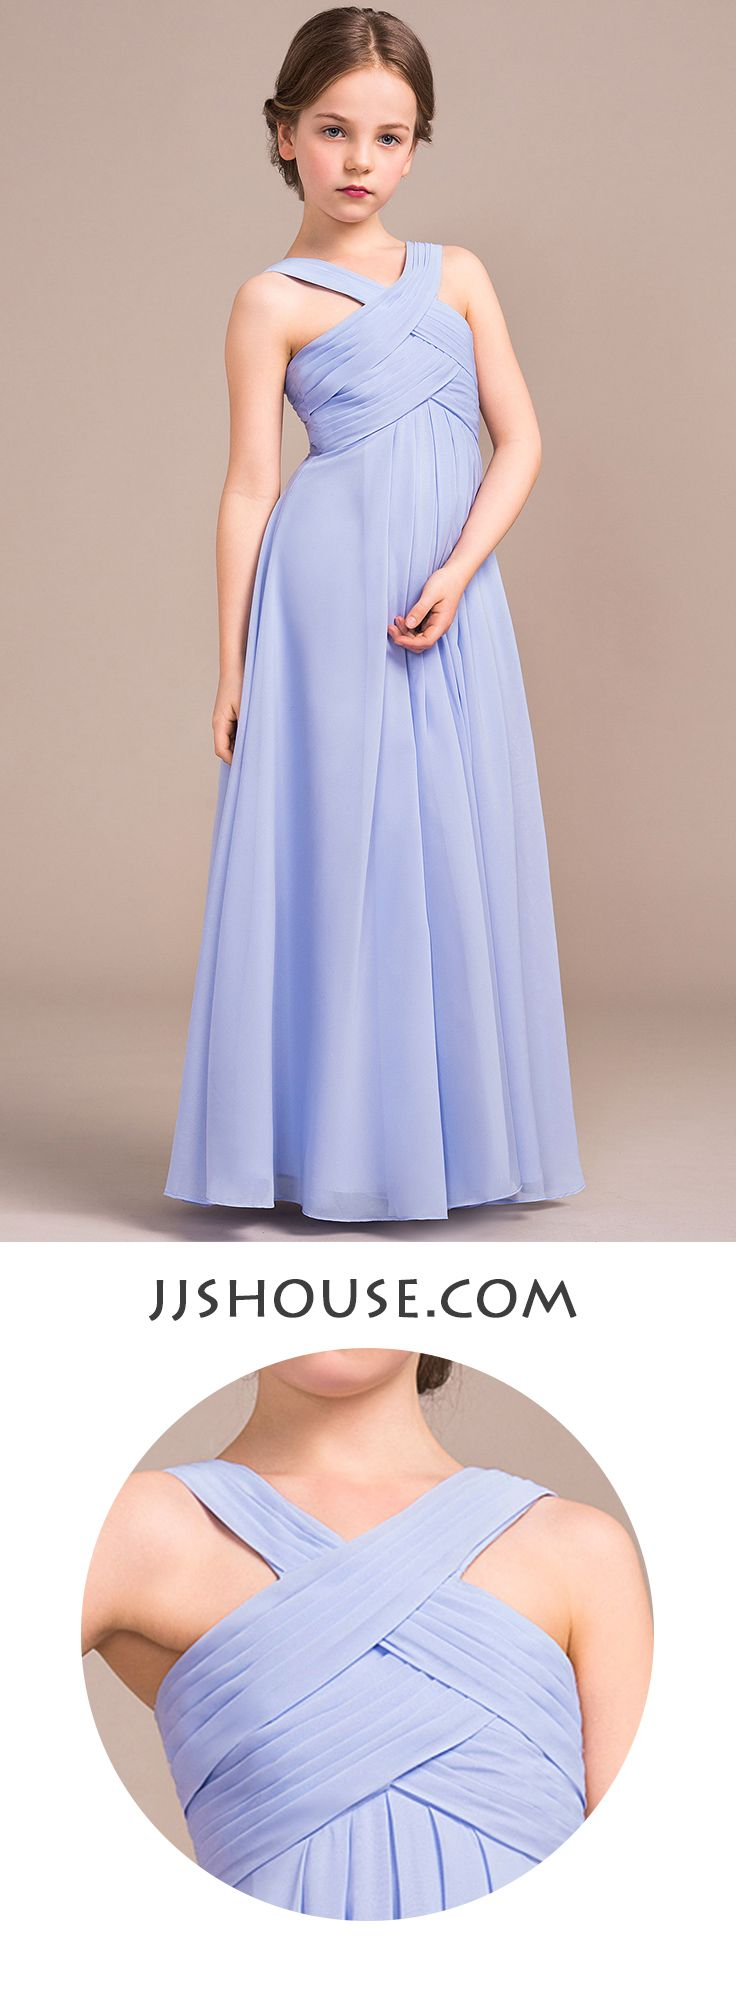 Best 25 junior bride dresses ideas on pinterest junior the younger girls in your party will blend seamlessly in this junior bridesmaid dress ombrellifo Images